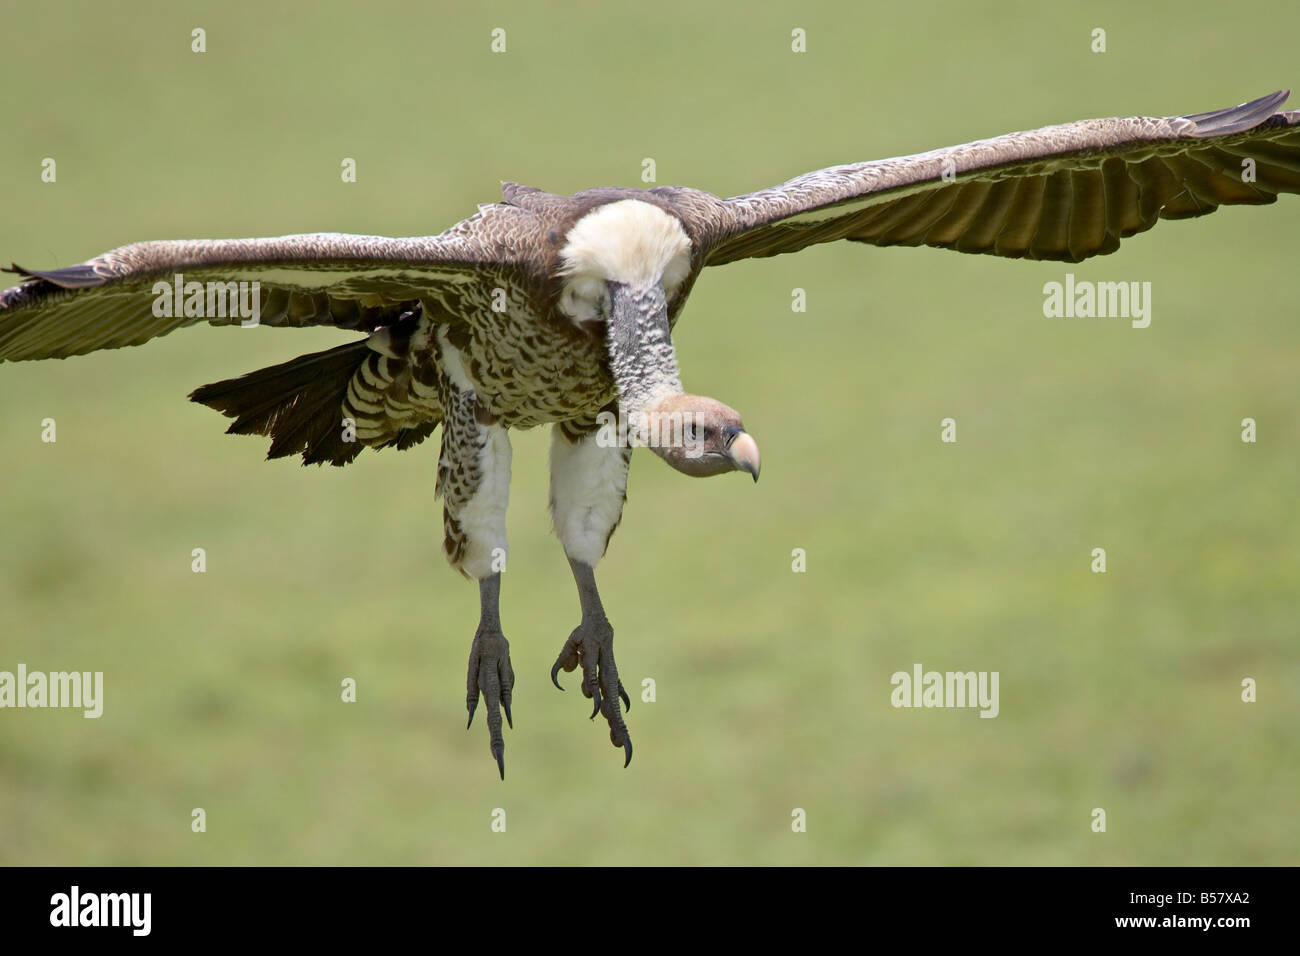 Ruppell's griffon vulture (Gyps rueppellii) on final approach, Serengeti National Park, Tanzania, East Africa, - Stock Image